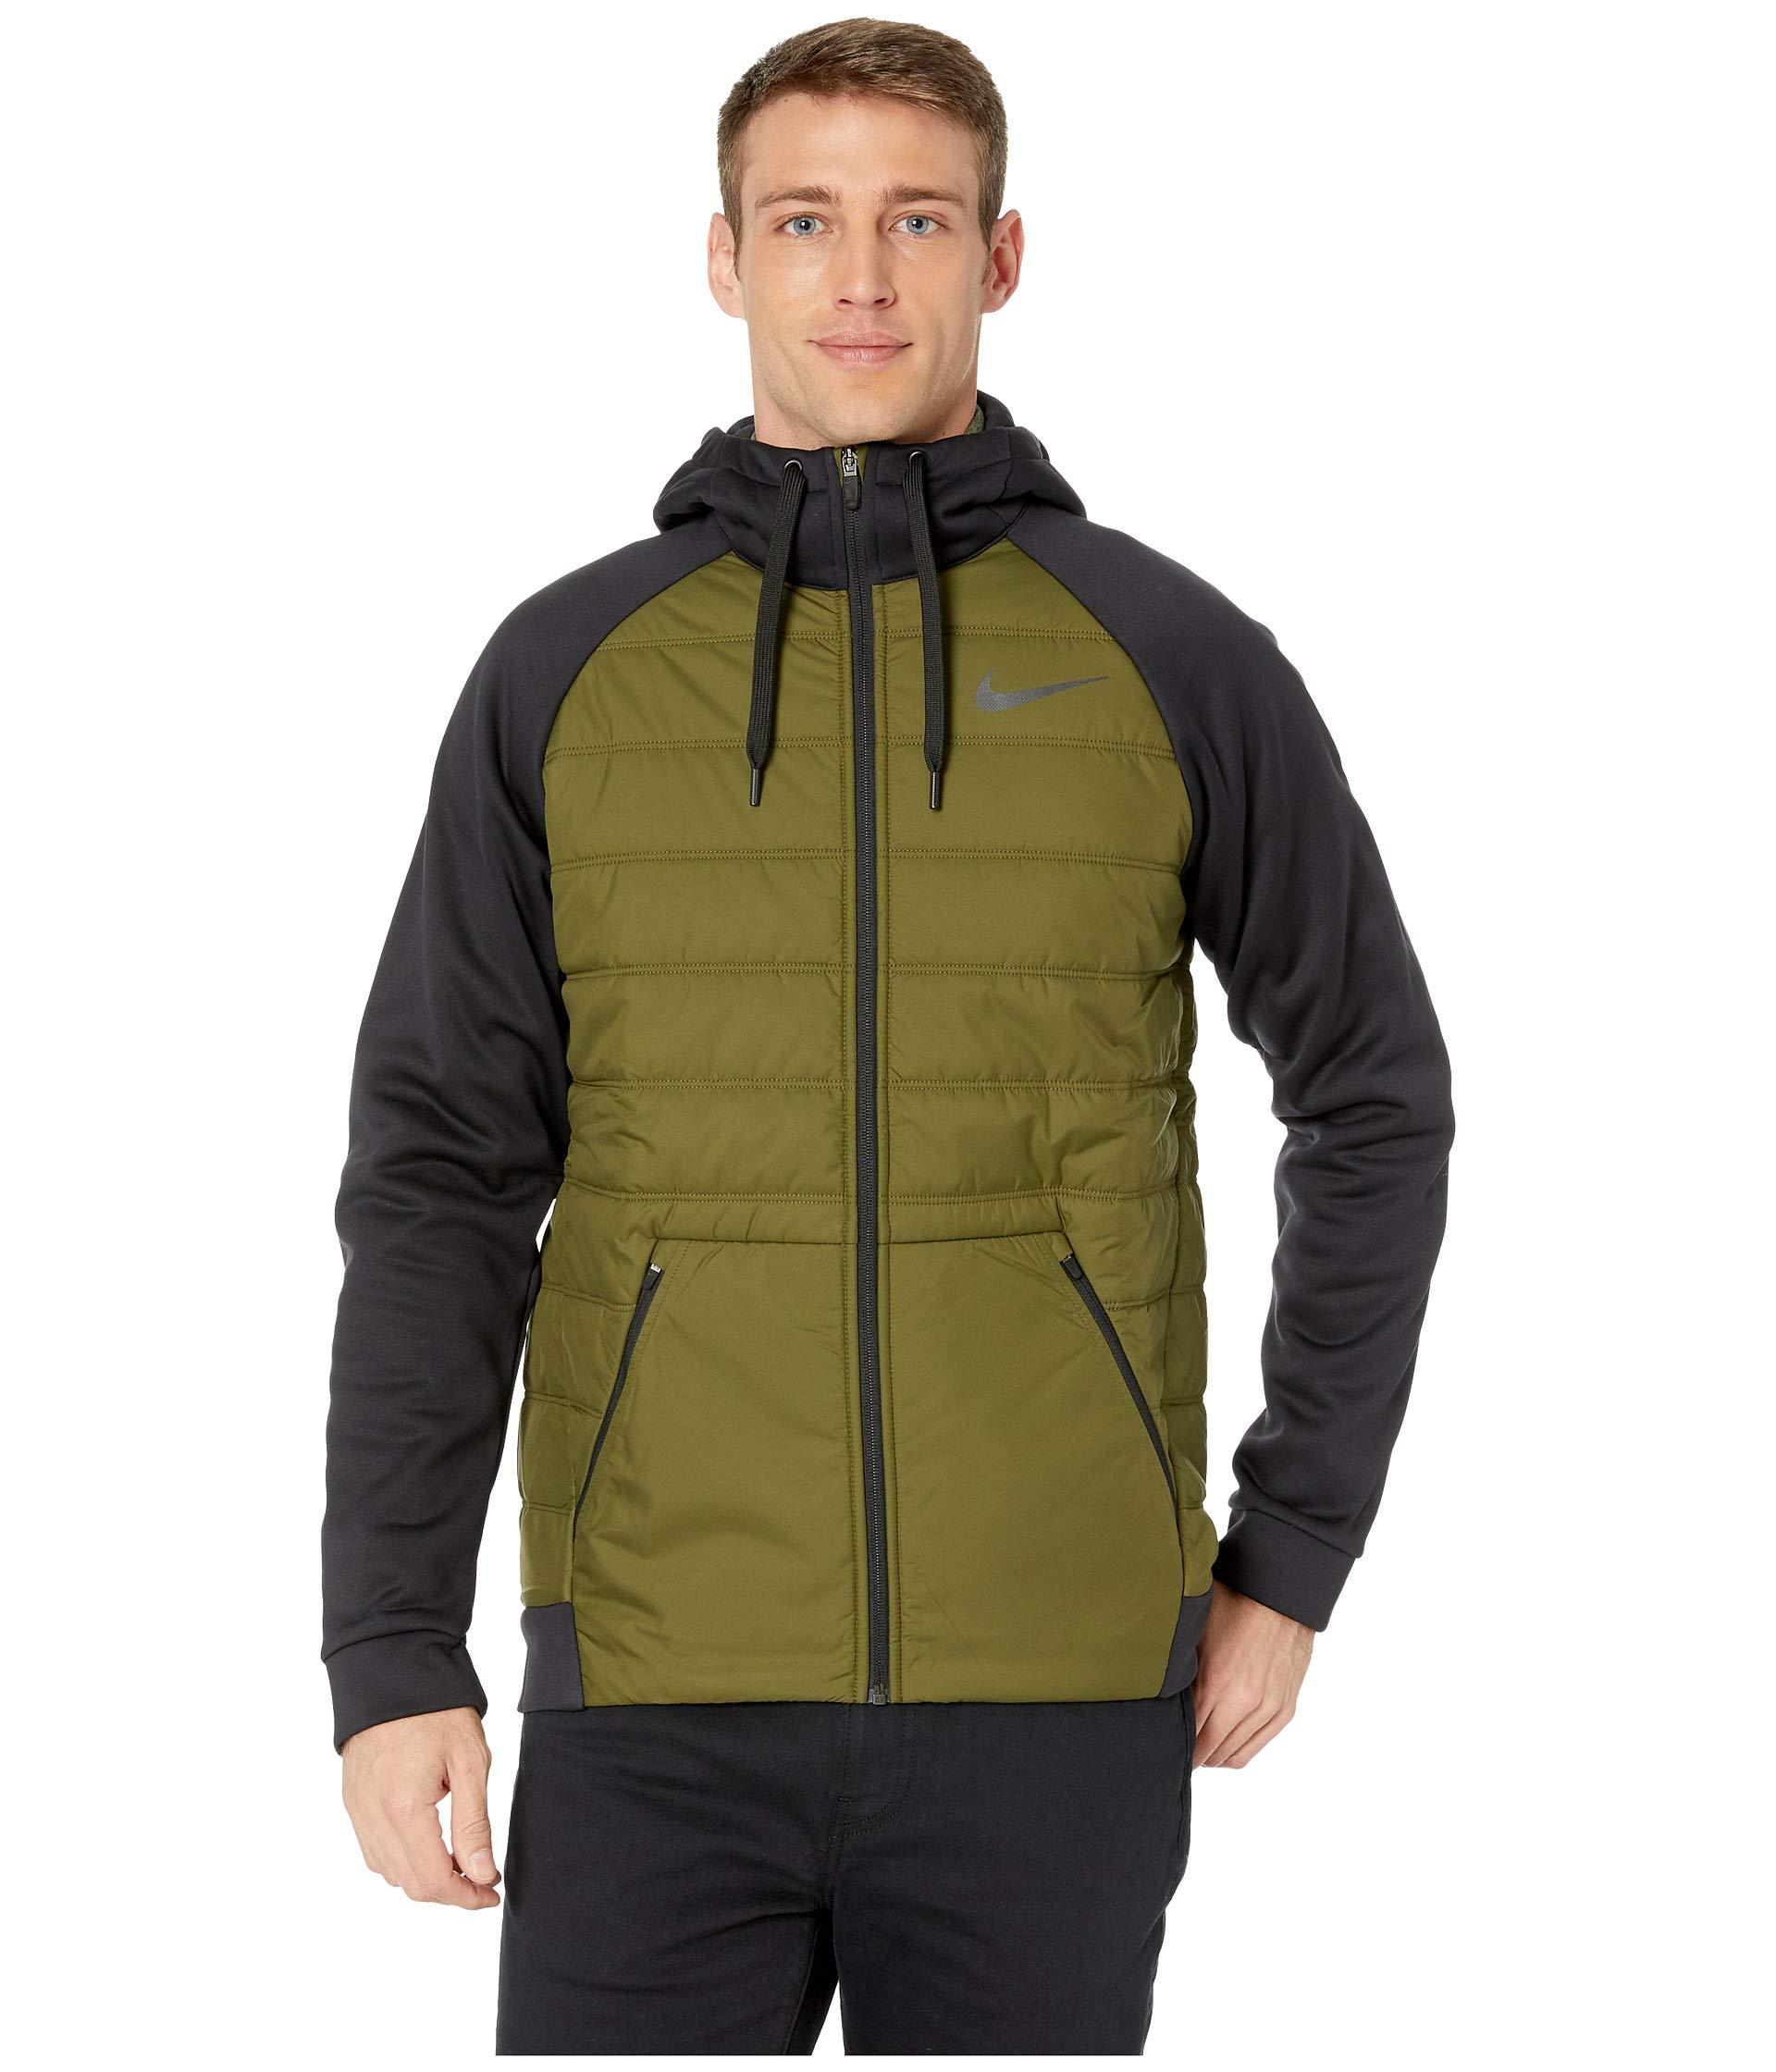 bf7a62cdf6b7 Lyst - Nike Therma Full Zip Winterized in Green for Men - Save 7%